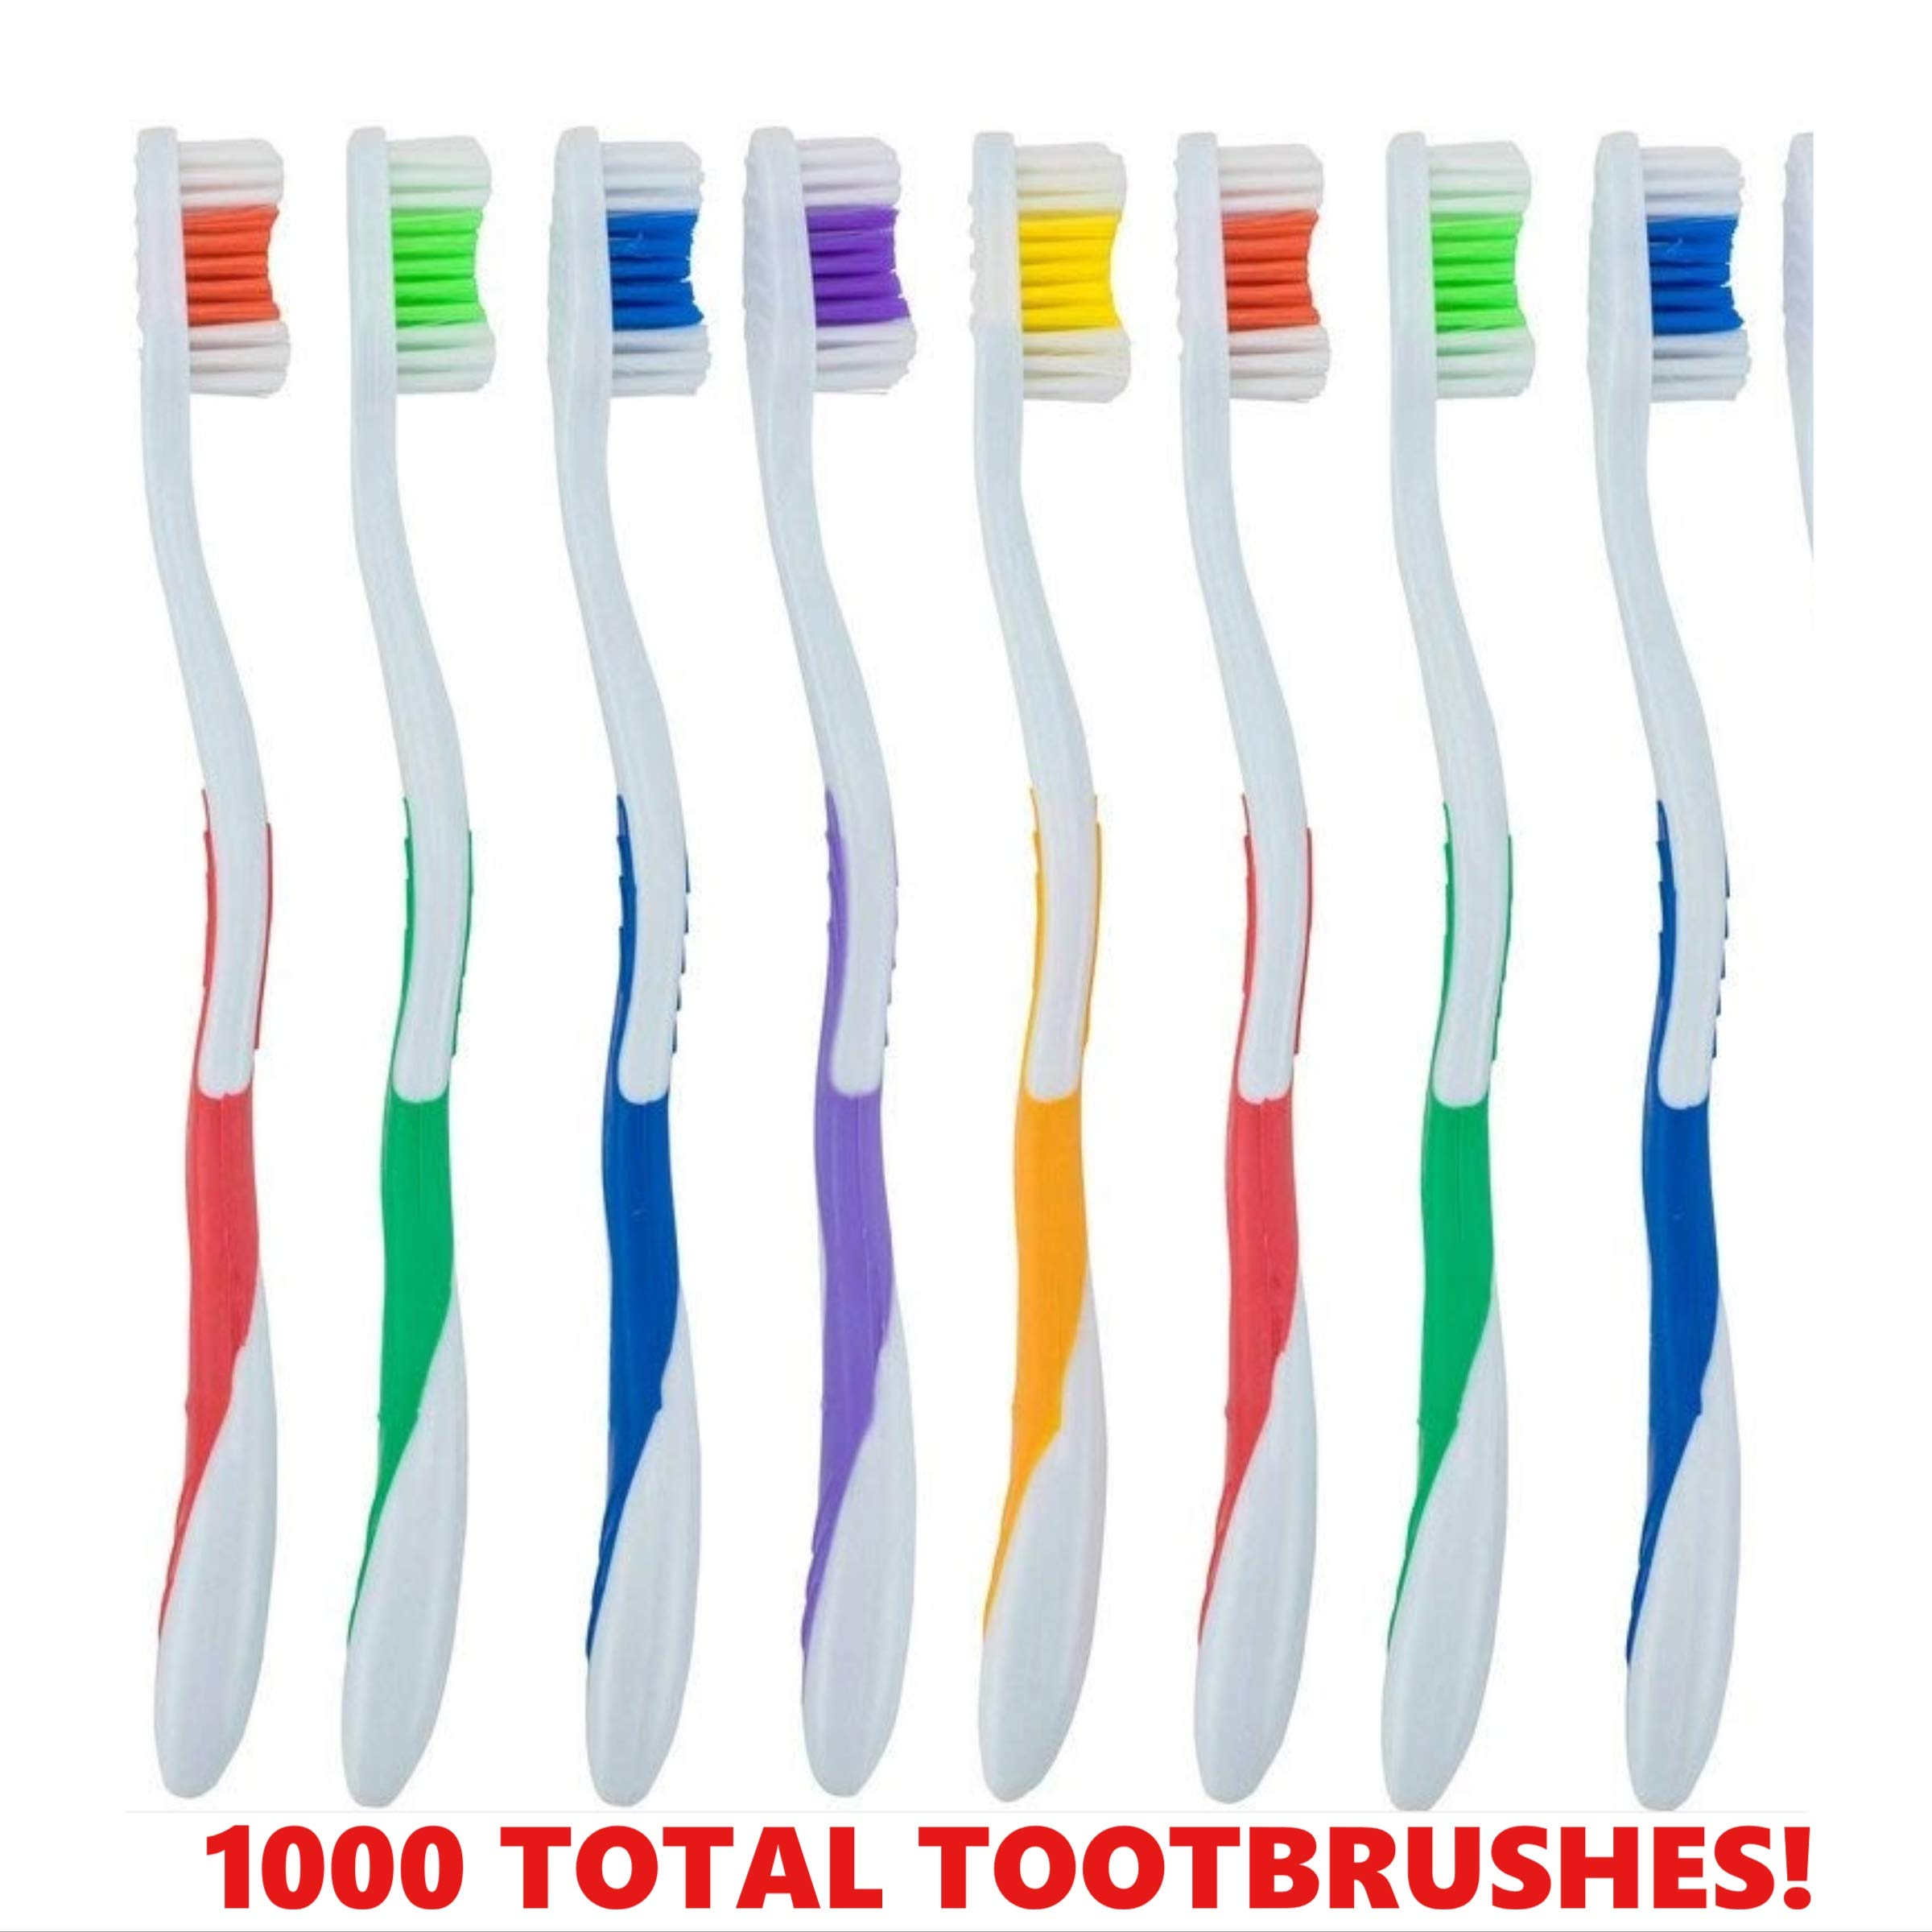 1000 Pack Toothbrushes Individually Wrapped Standard Medium Bristle, for Travel, Hotel, Guests, Disposable use and More